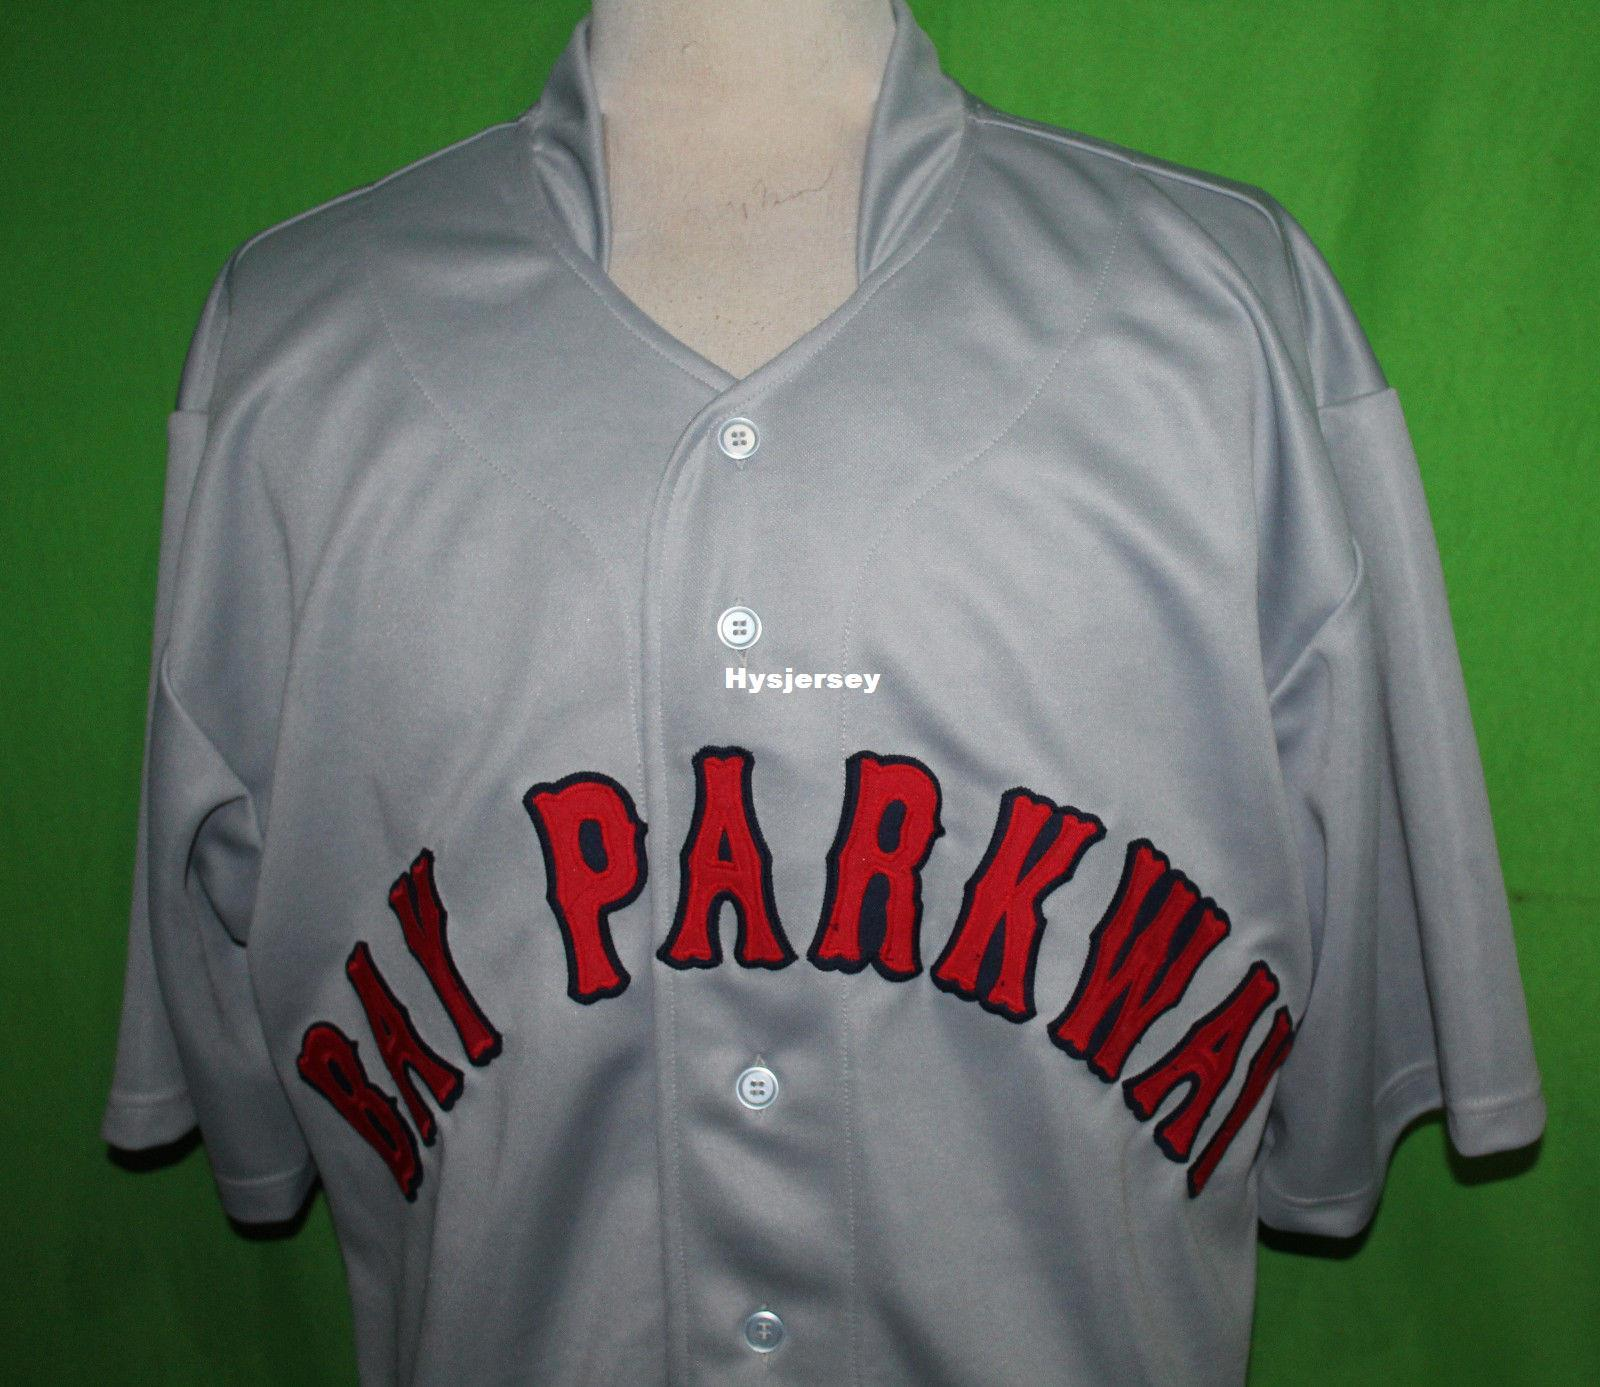 c6578453 2019 Cheap Retro BROOKLYN BAY PARKWAYS #3 1935 Road BASEBALL JERSEY Or  Custom Any Number Any Mens Vintage Jerseys XS 5XL From Hysjersey, $19.65 |  DHgate.Com